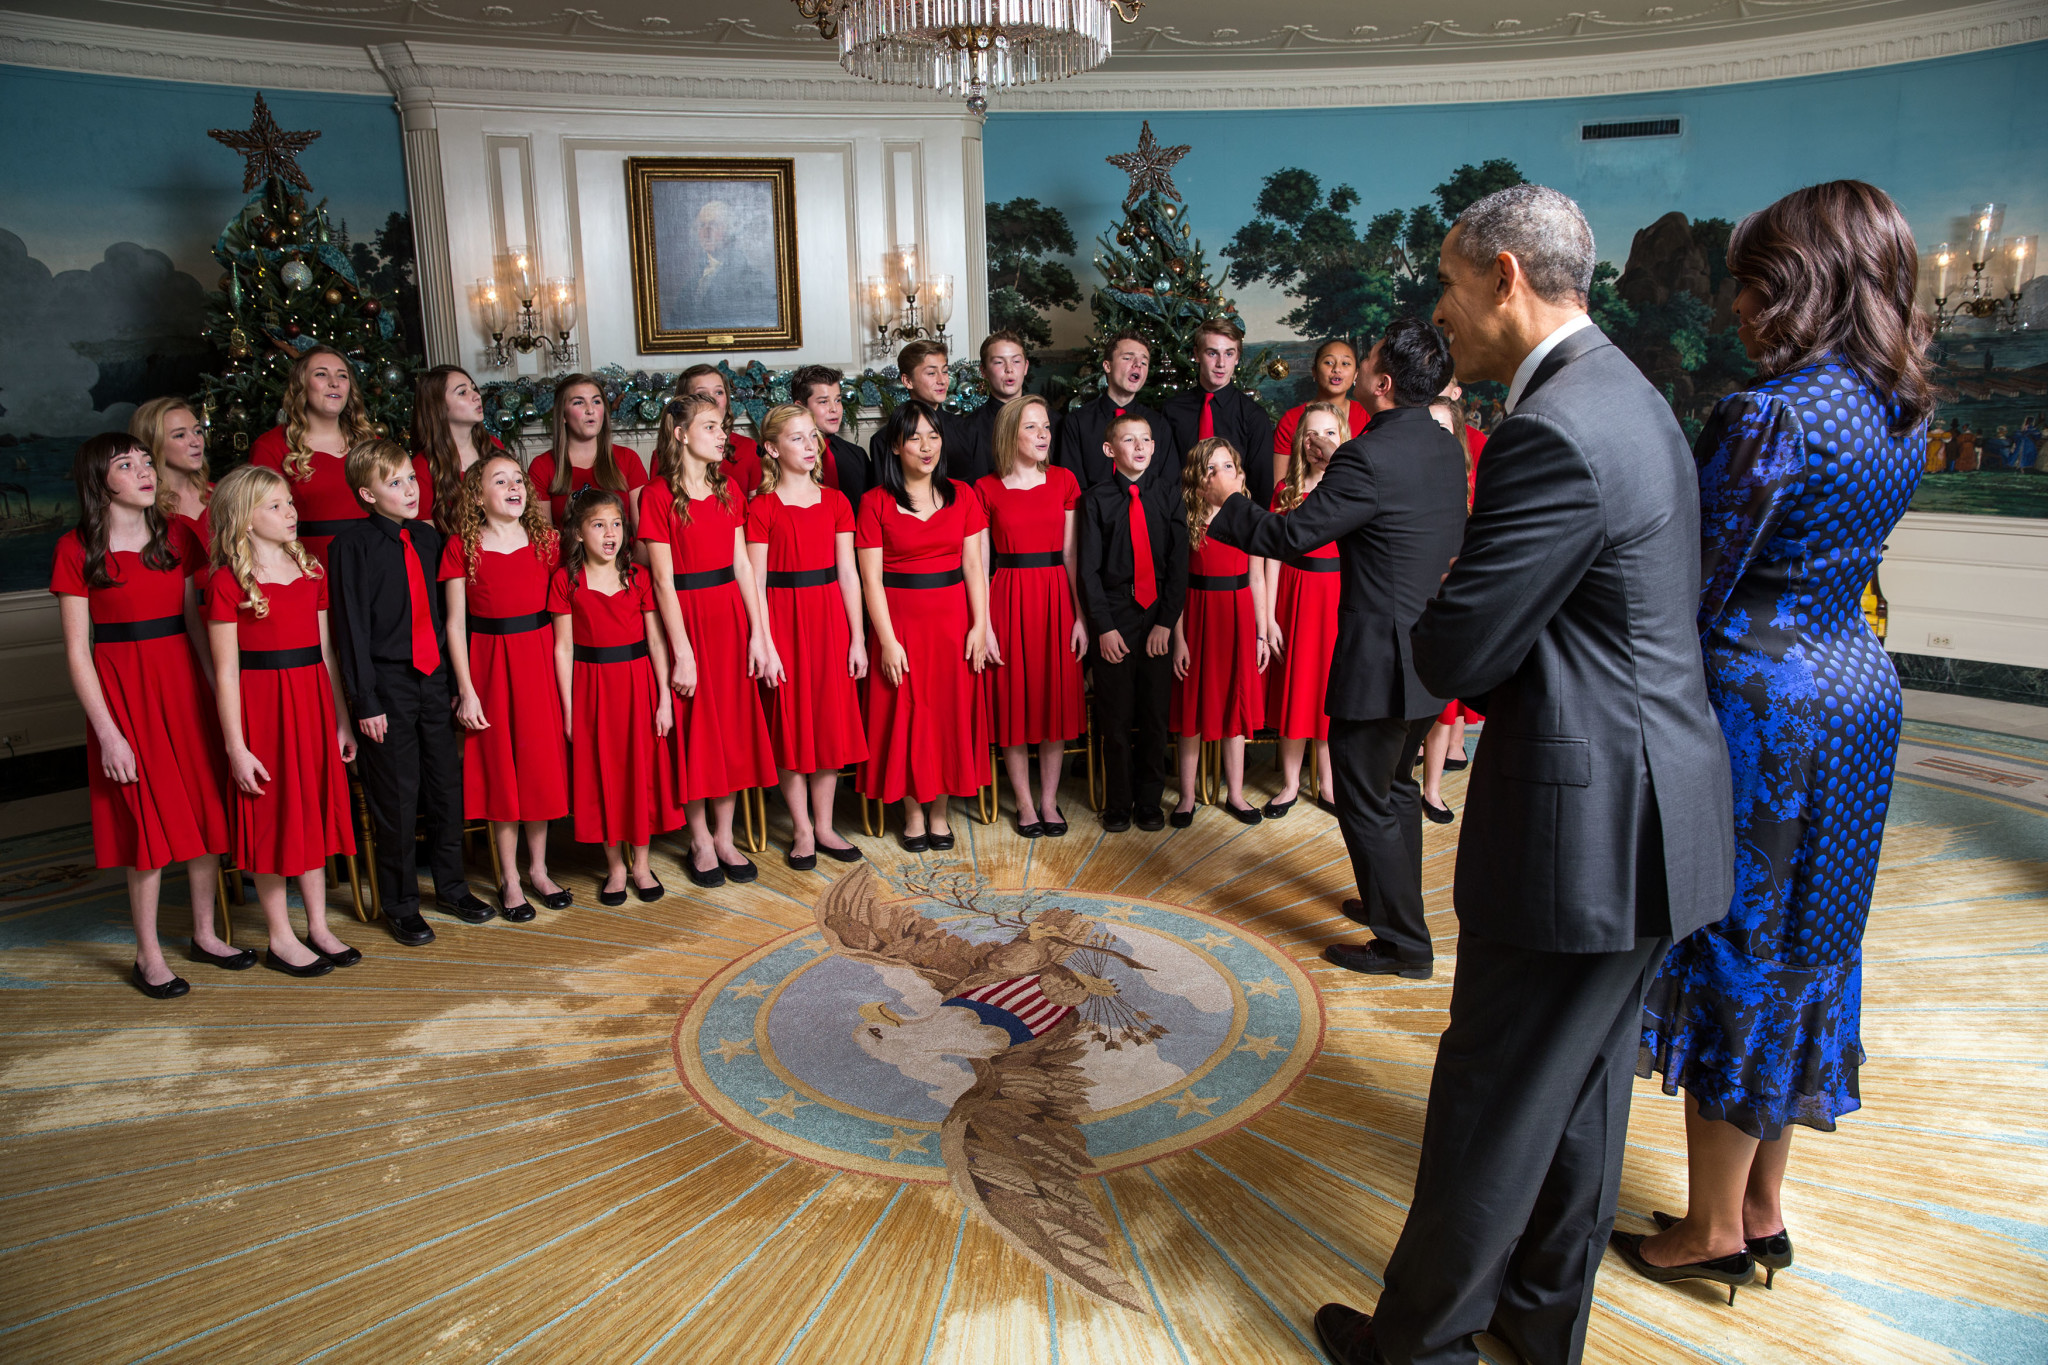 Reese and One Voice Children's Choir singing for President Obama and the first lady, Michelle Obama